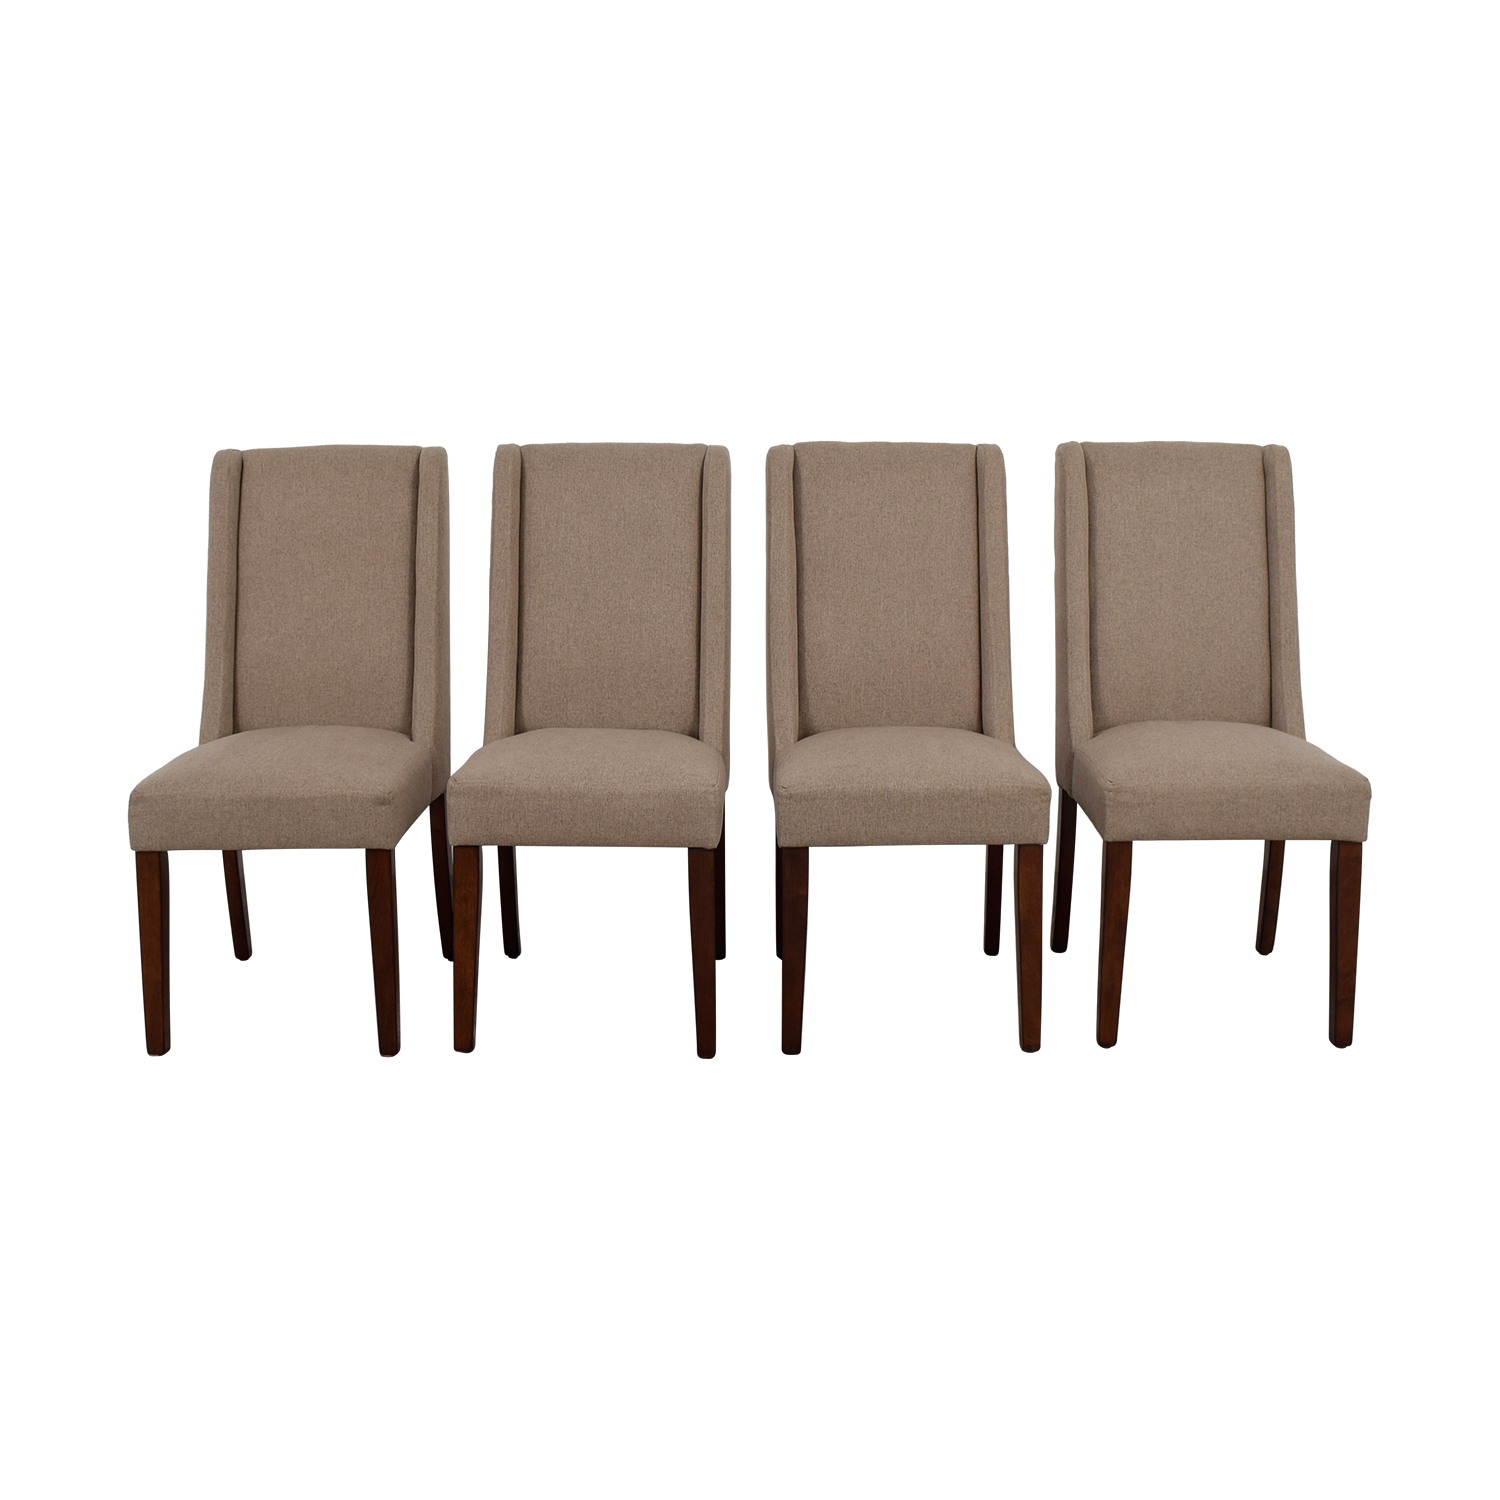 Darby Home Co Tan Upholstered Dining Chairs Darby Home Co